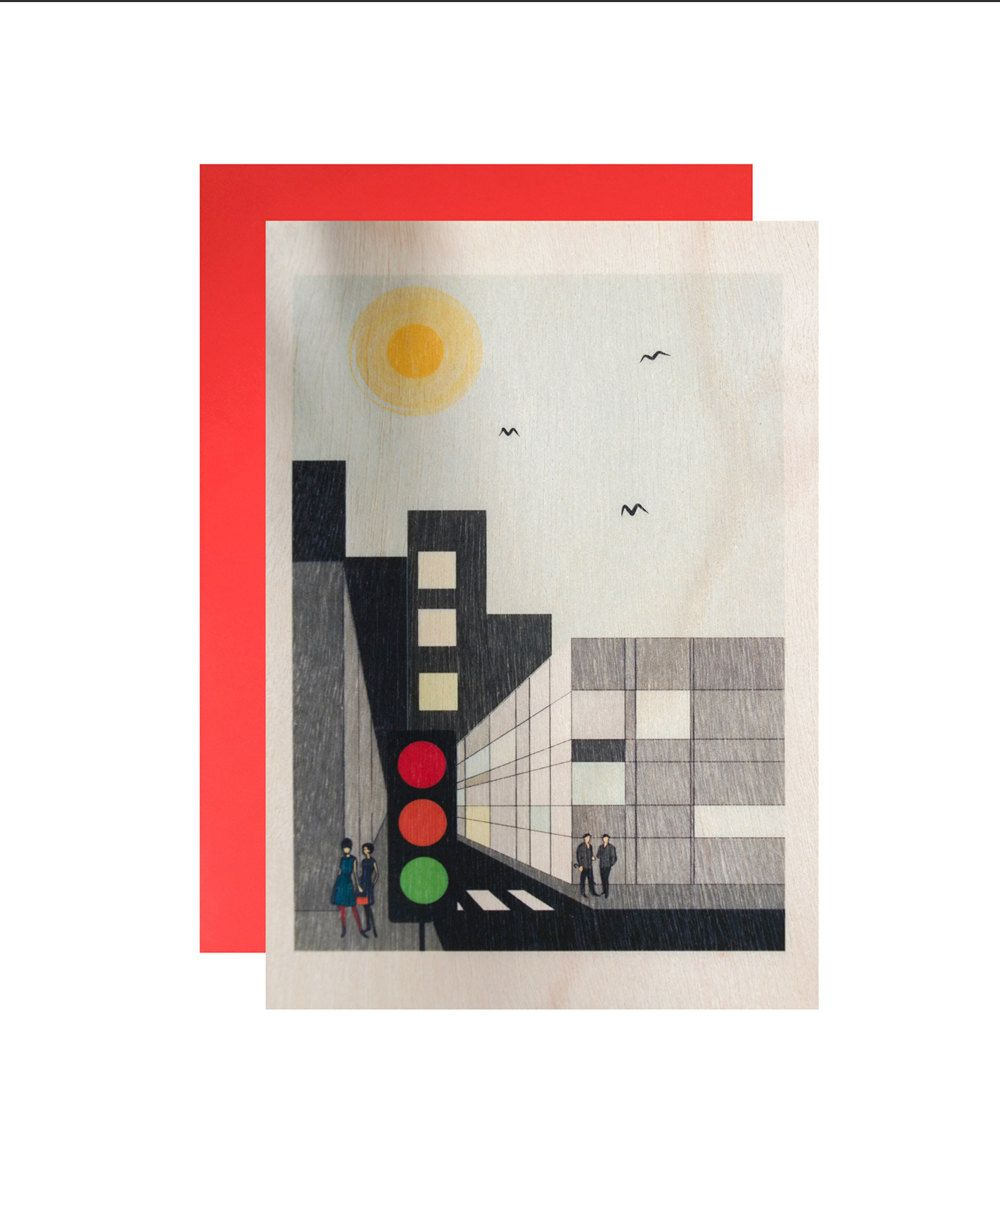 City Streets Blank Greeting Card On Wood by MrJaggers on Etsy